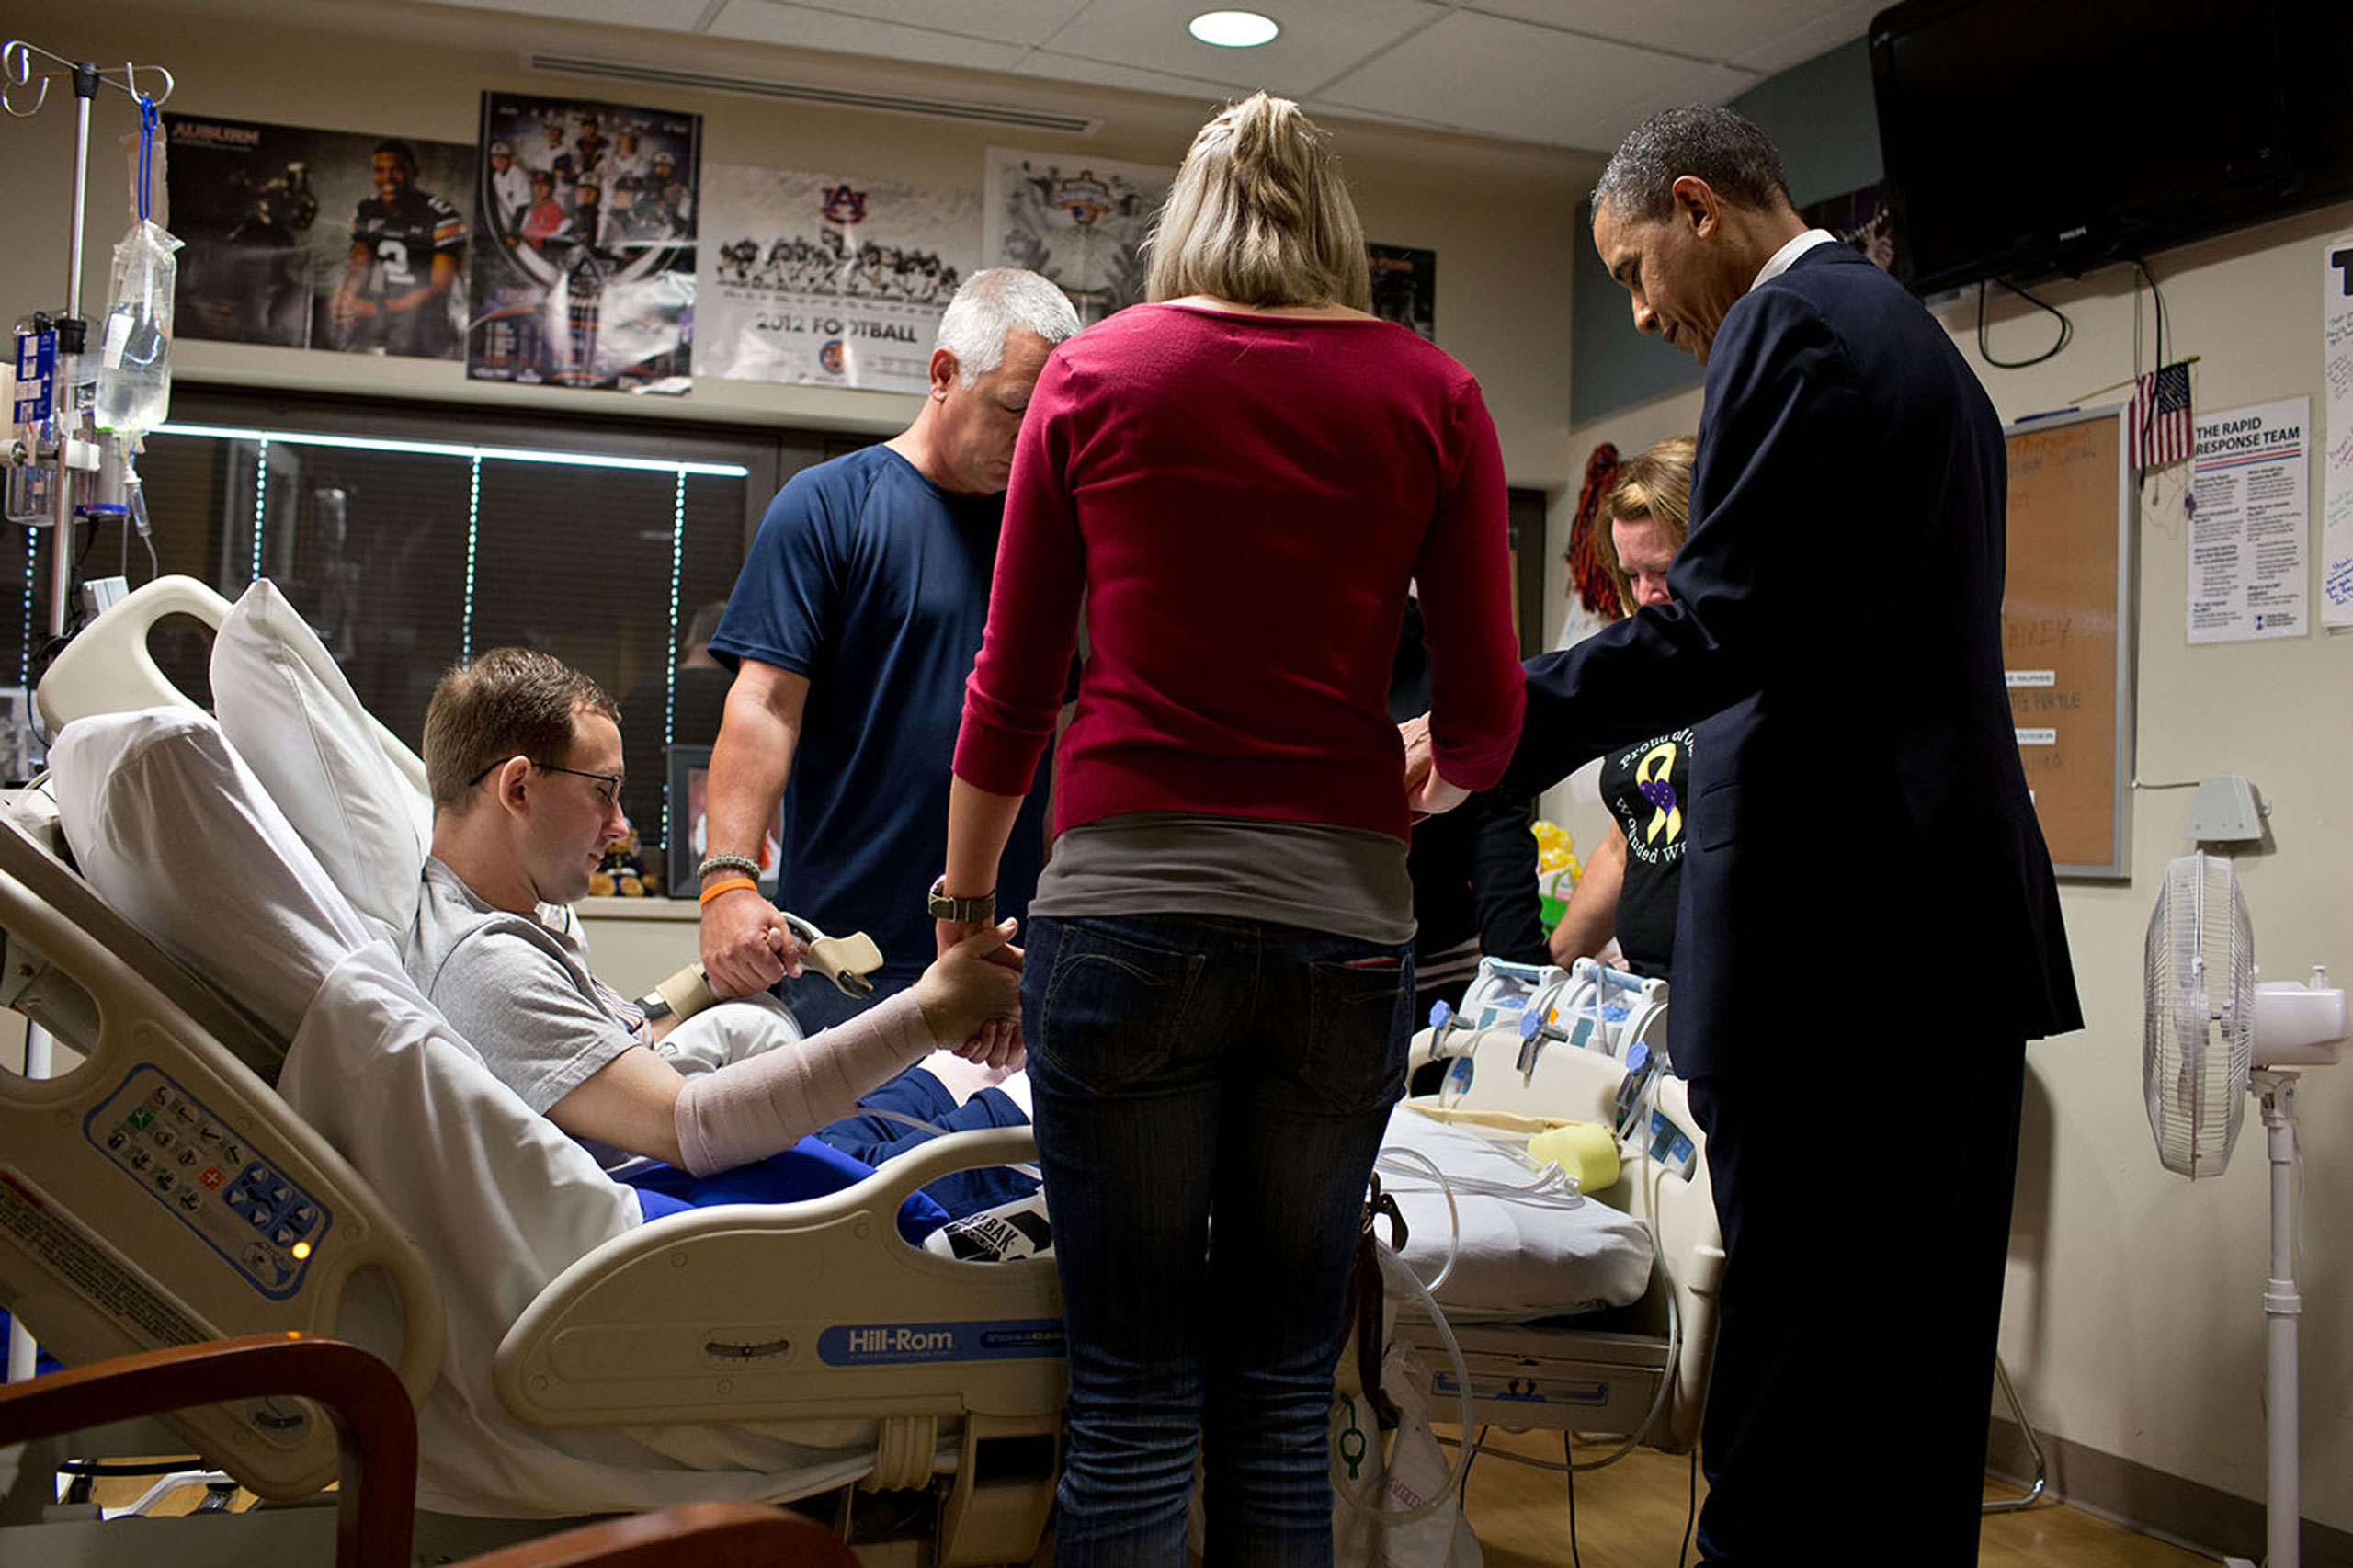 The President prays with a wounded service member and his family during a visit to Walter Reed National Military Medical Center in Bethesda, Md. The President likes to make a few trips a year to Walter Reed to visit wounded warriors and their families,  June 28, 2012.